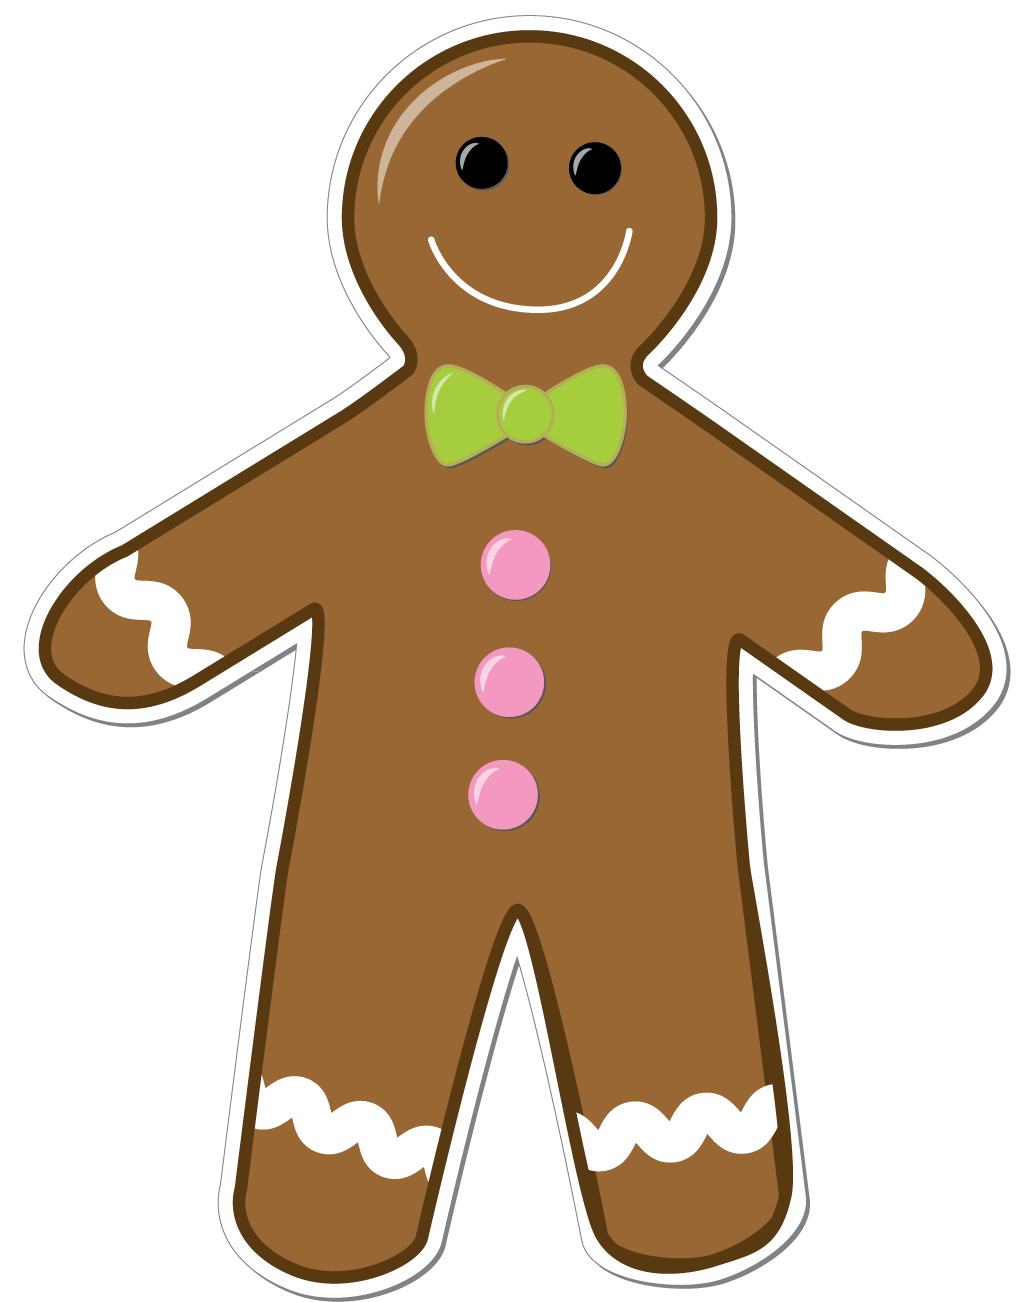 Gingerbread man story clipart black and white